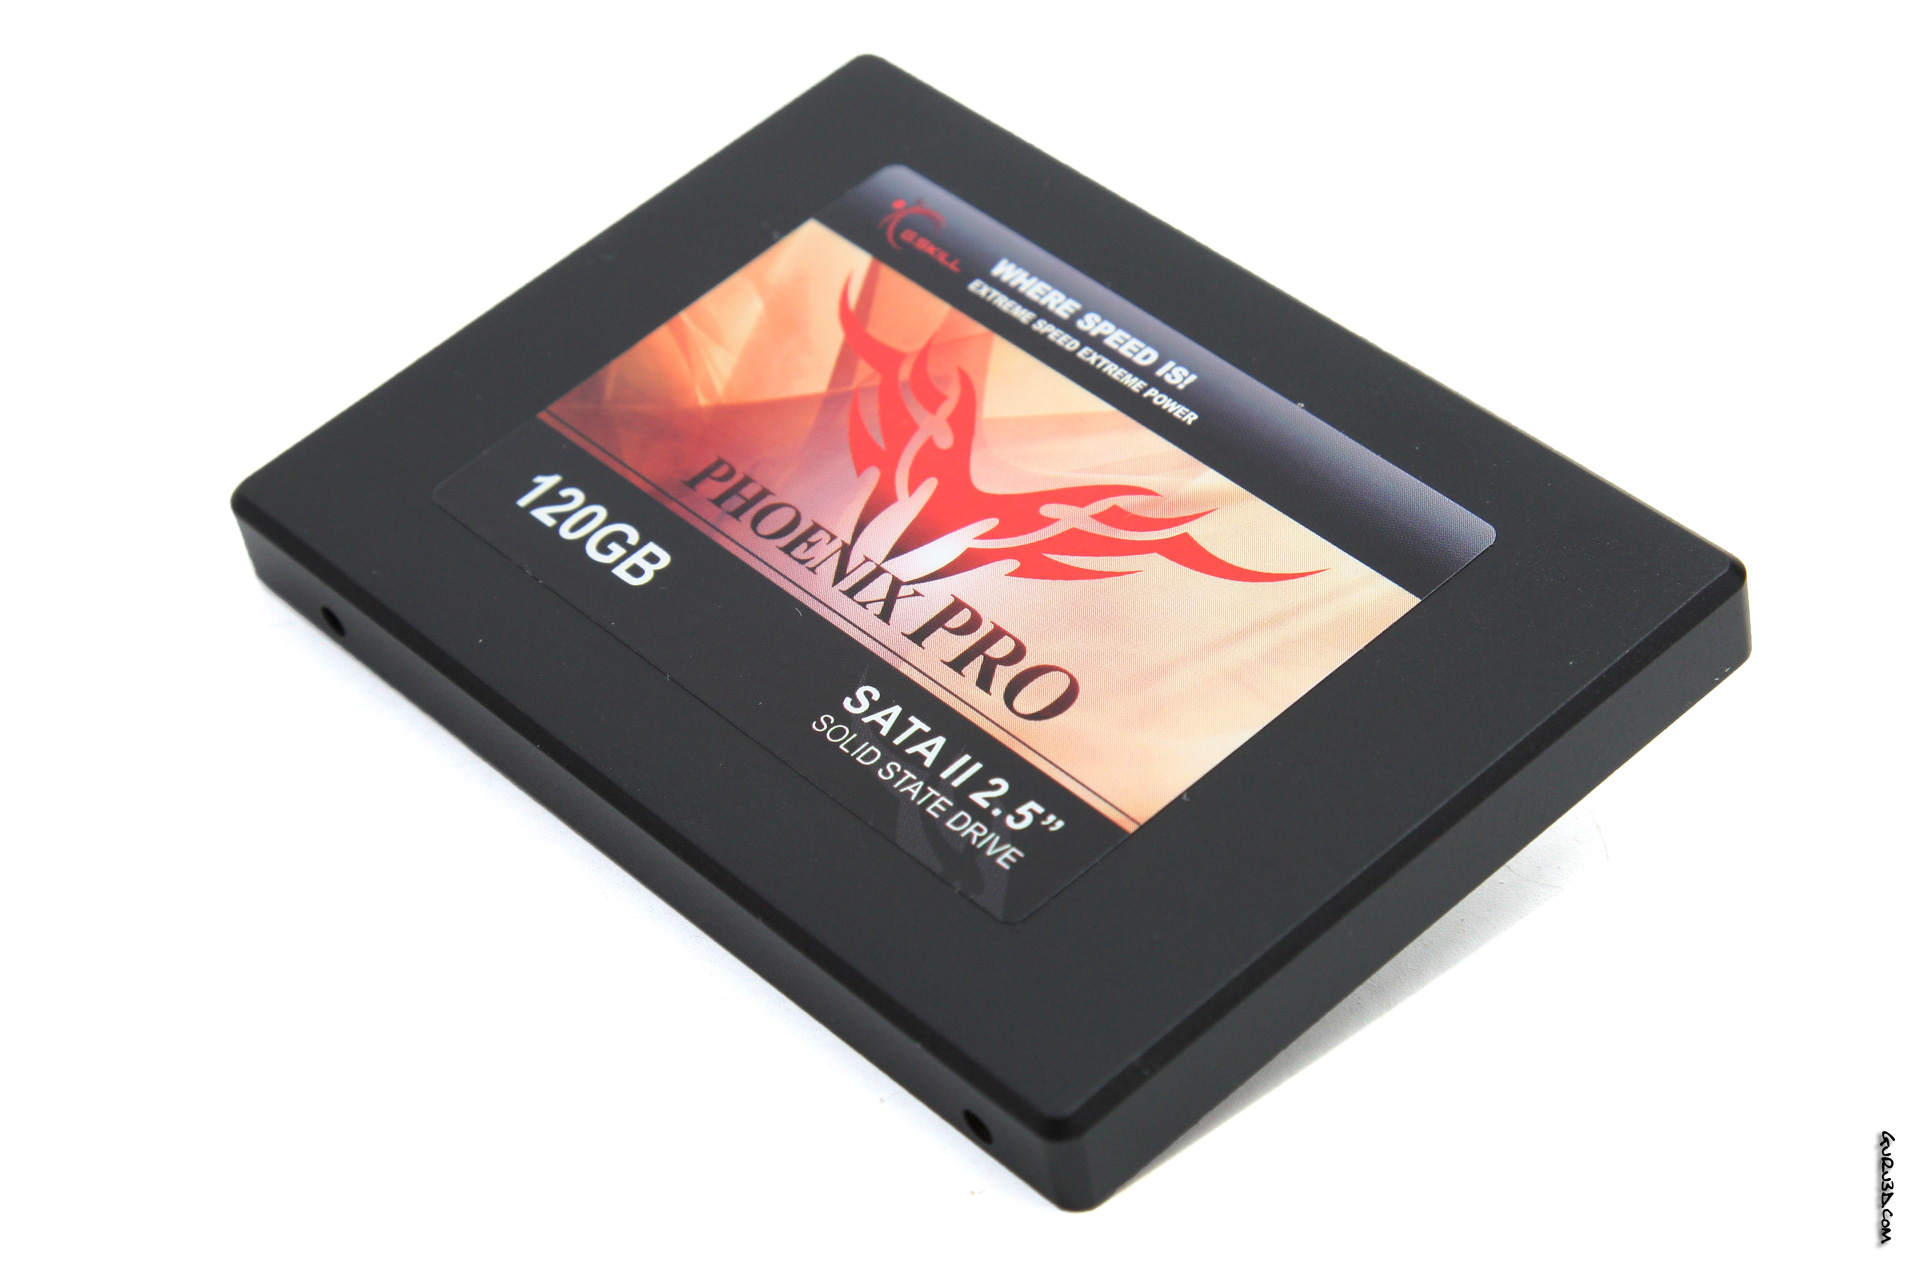 G Skill Phoenix PRO 120GB SSD review - Solid State Drives 101